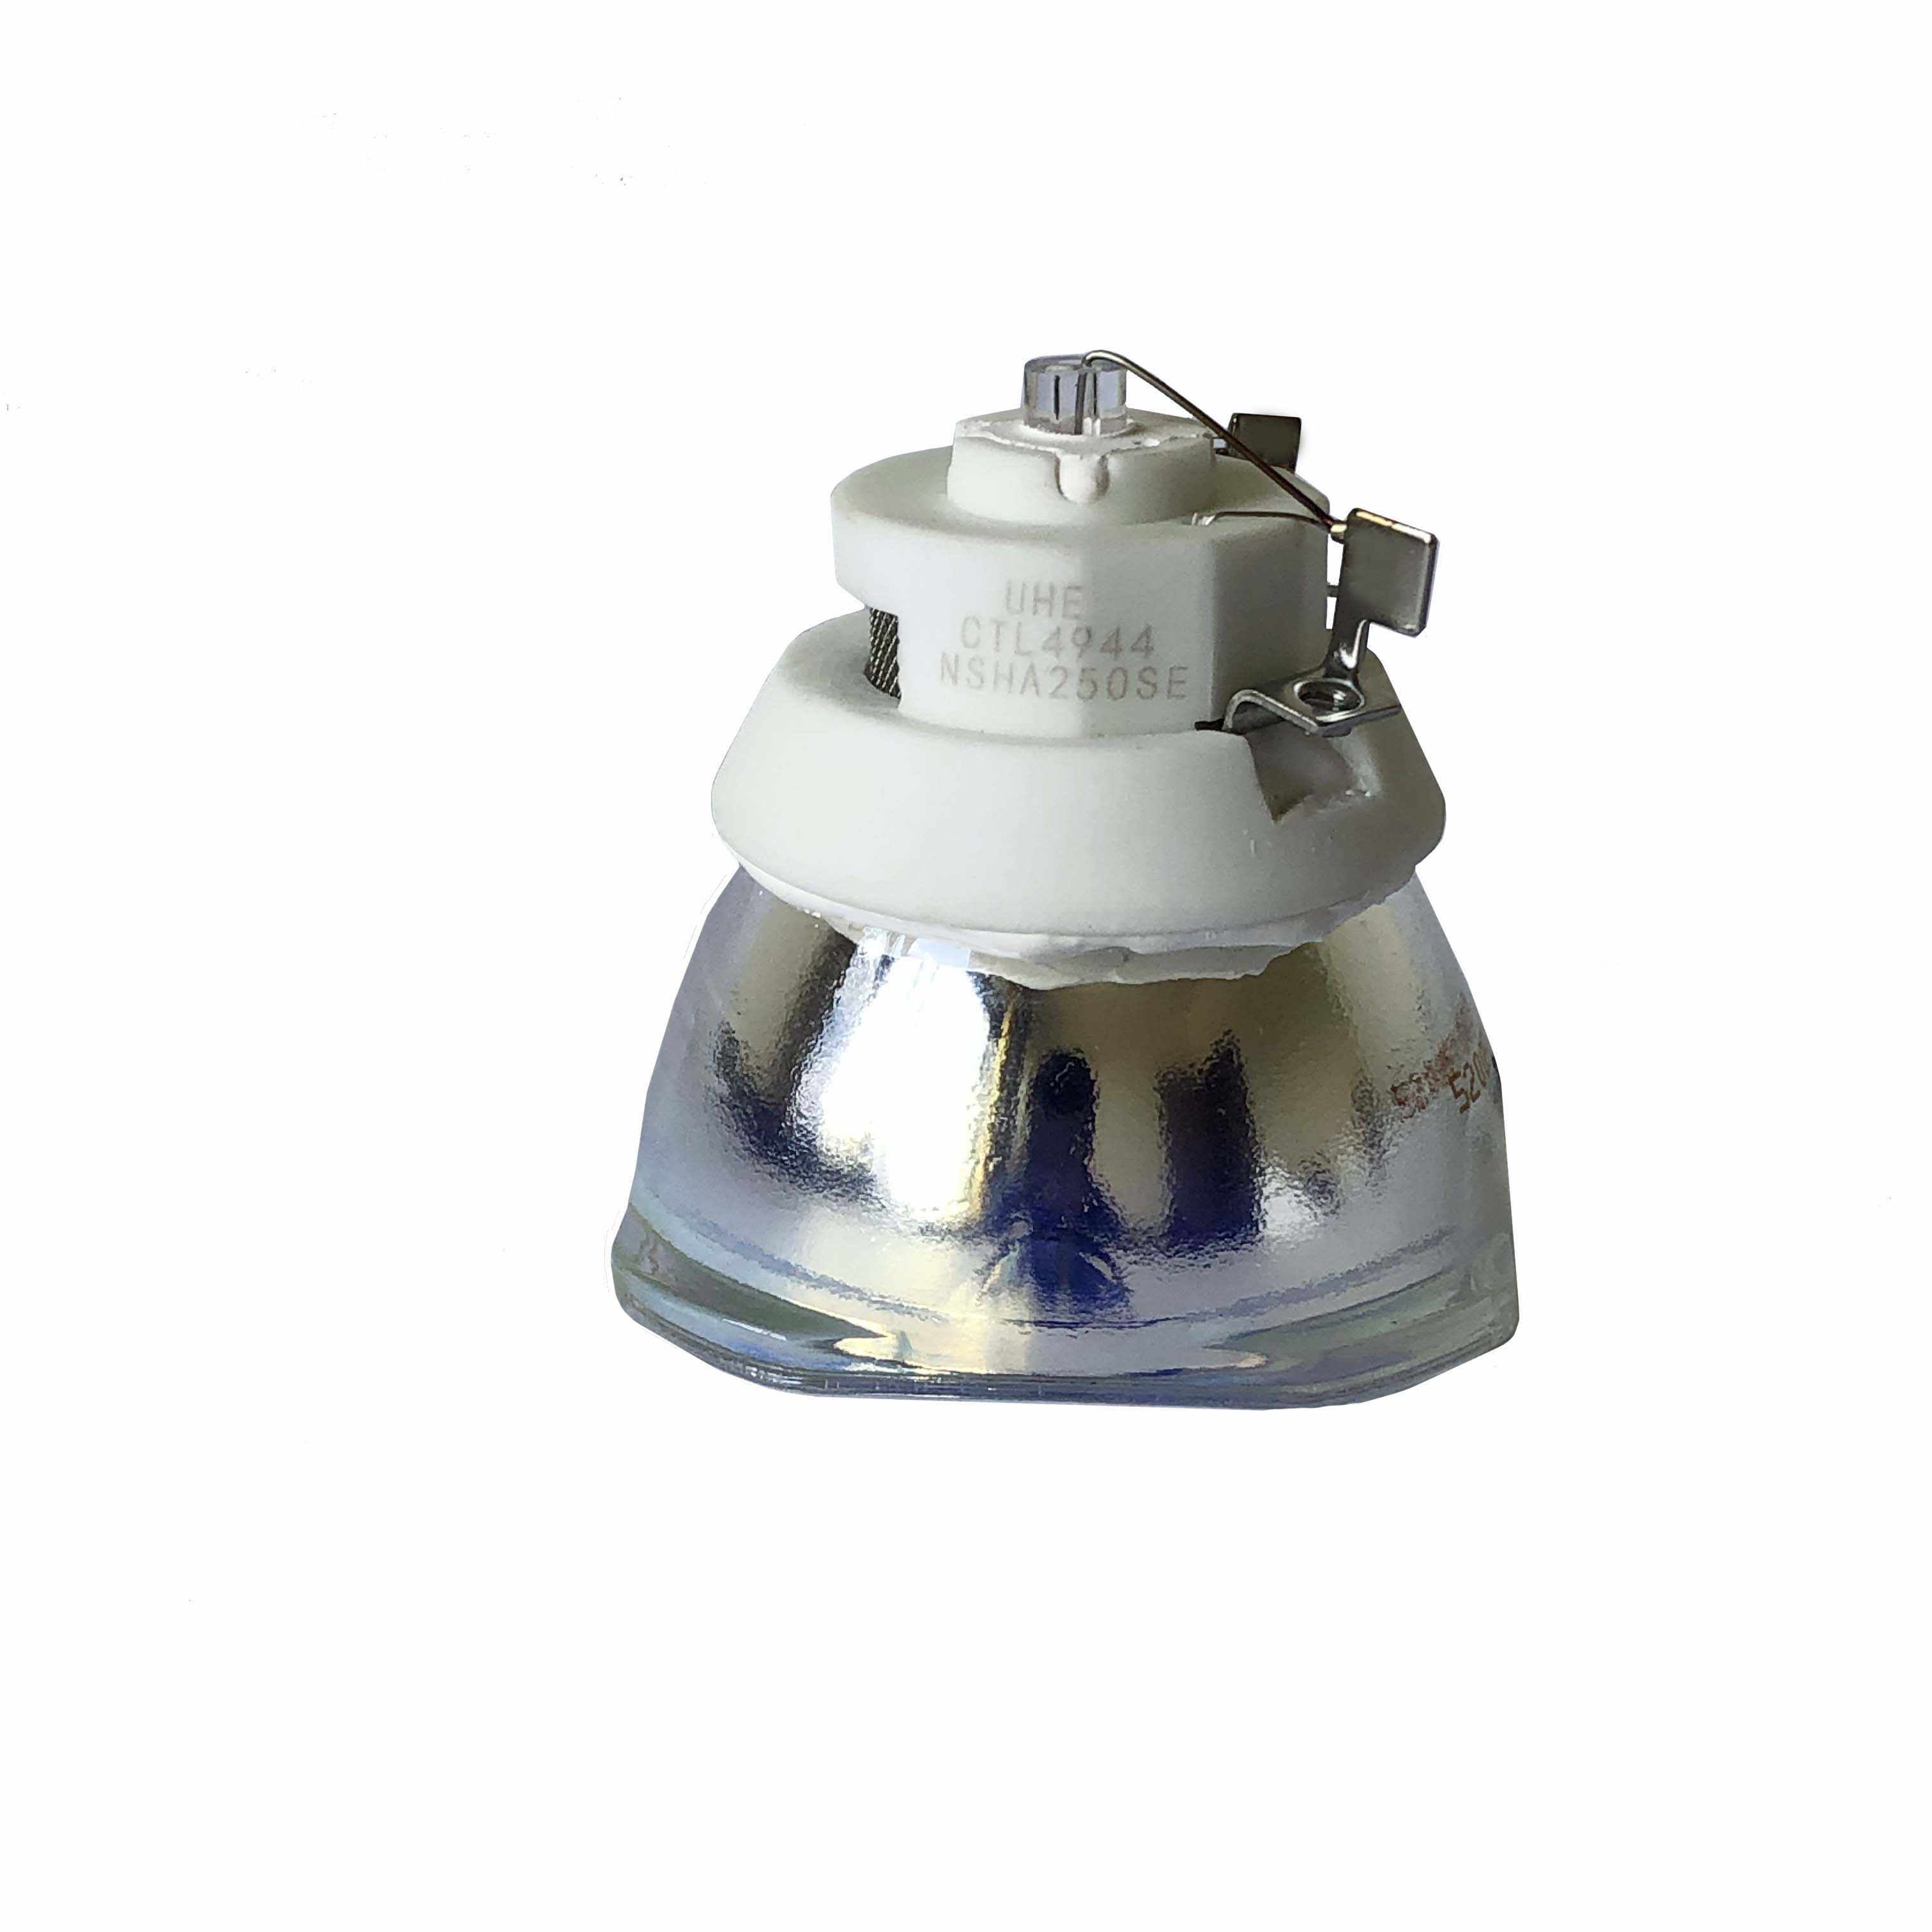 Araca ELPLP89 Projector Bare Lamp for EH-TW7300 TW9300 TW9300W TW8300 TW8300W 5040UB 5040UBE 5050UB 6040ub 5050UBe 4010 Replacement Projector Lamp